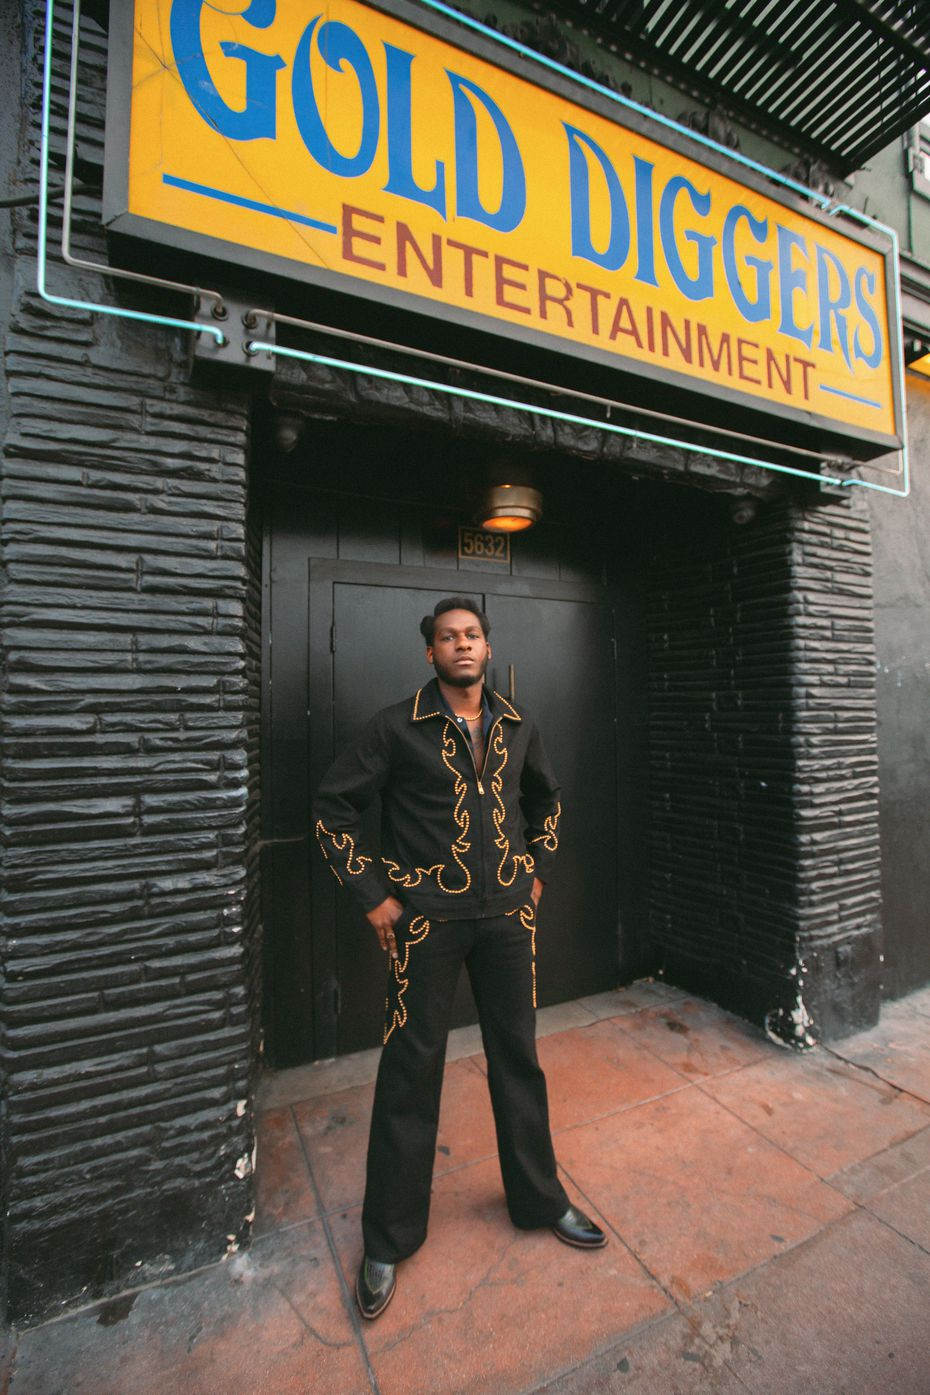 """Bridges recorded the album at Gold-Diggers, a bar, hotel and recording studio whose motto is """"Drink. Sleep. Record."""" He lived at the Hollywood complex for nearly two years."""